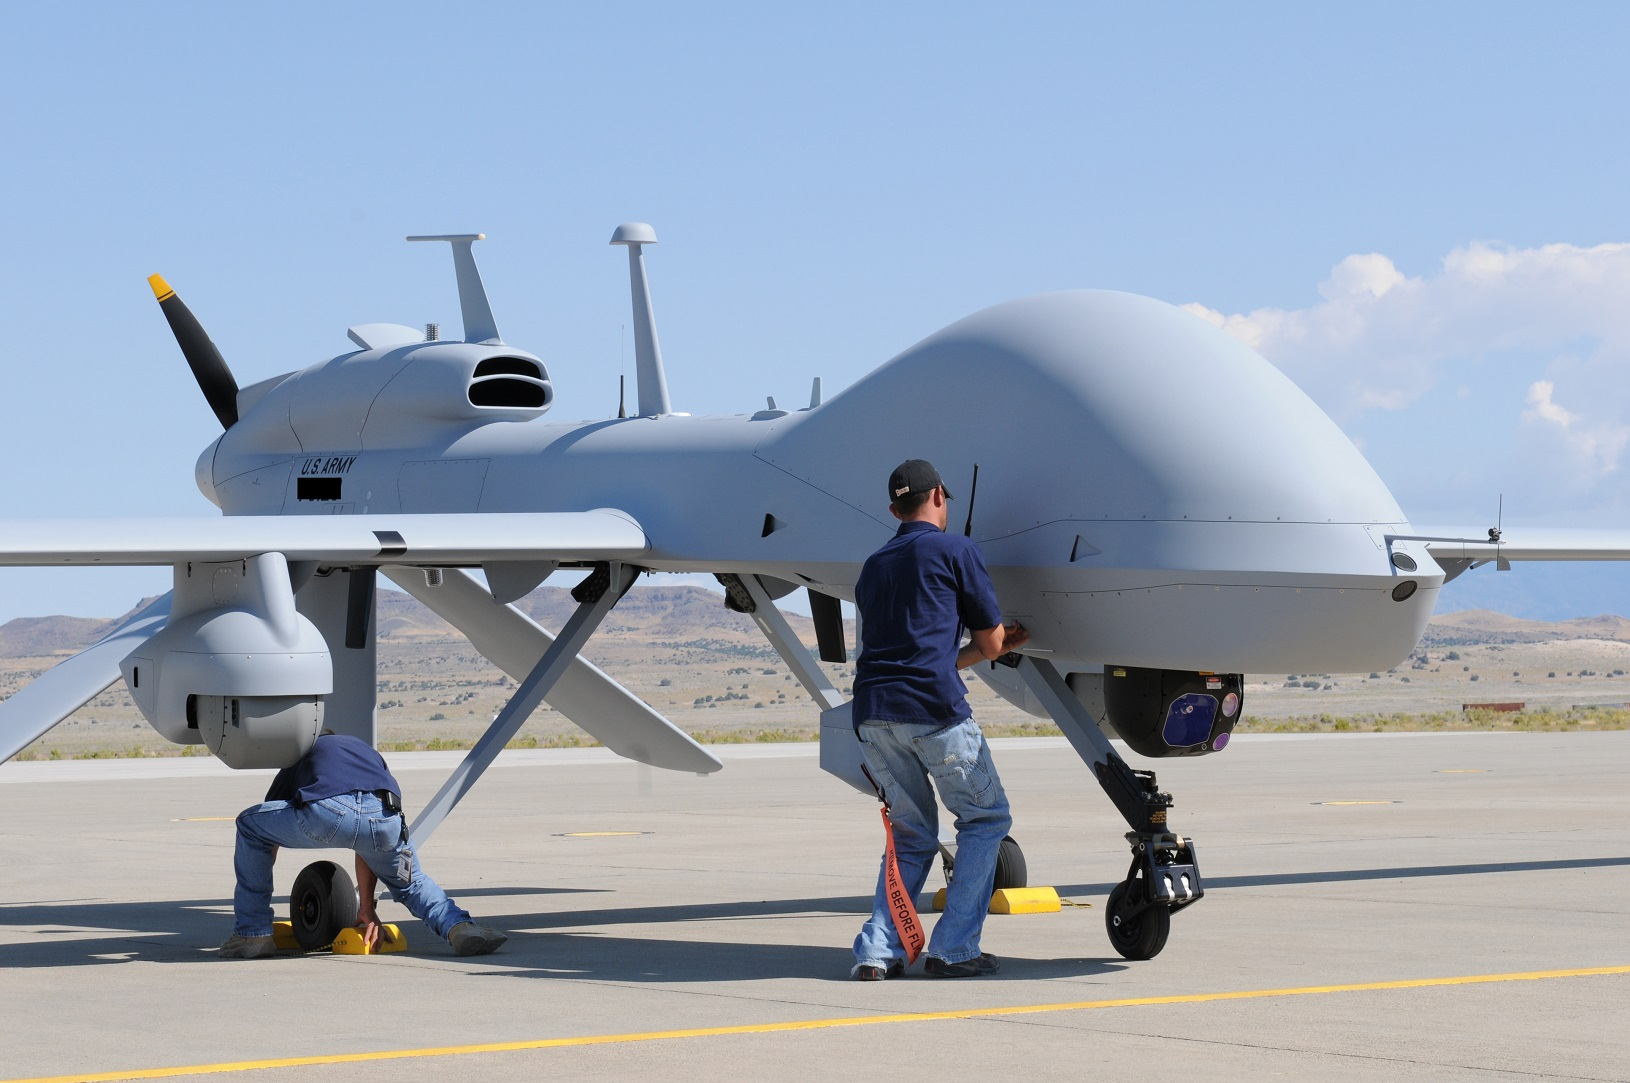 GA-ASI receives $93 million to integrate AI into U.S. Army drones